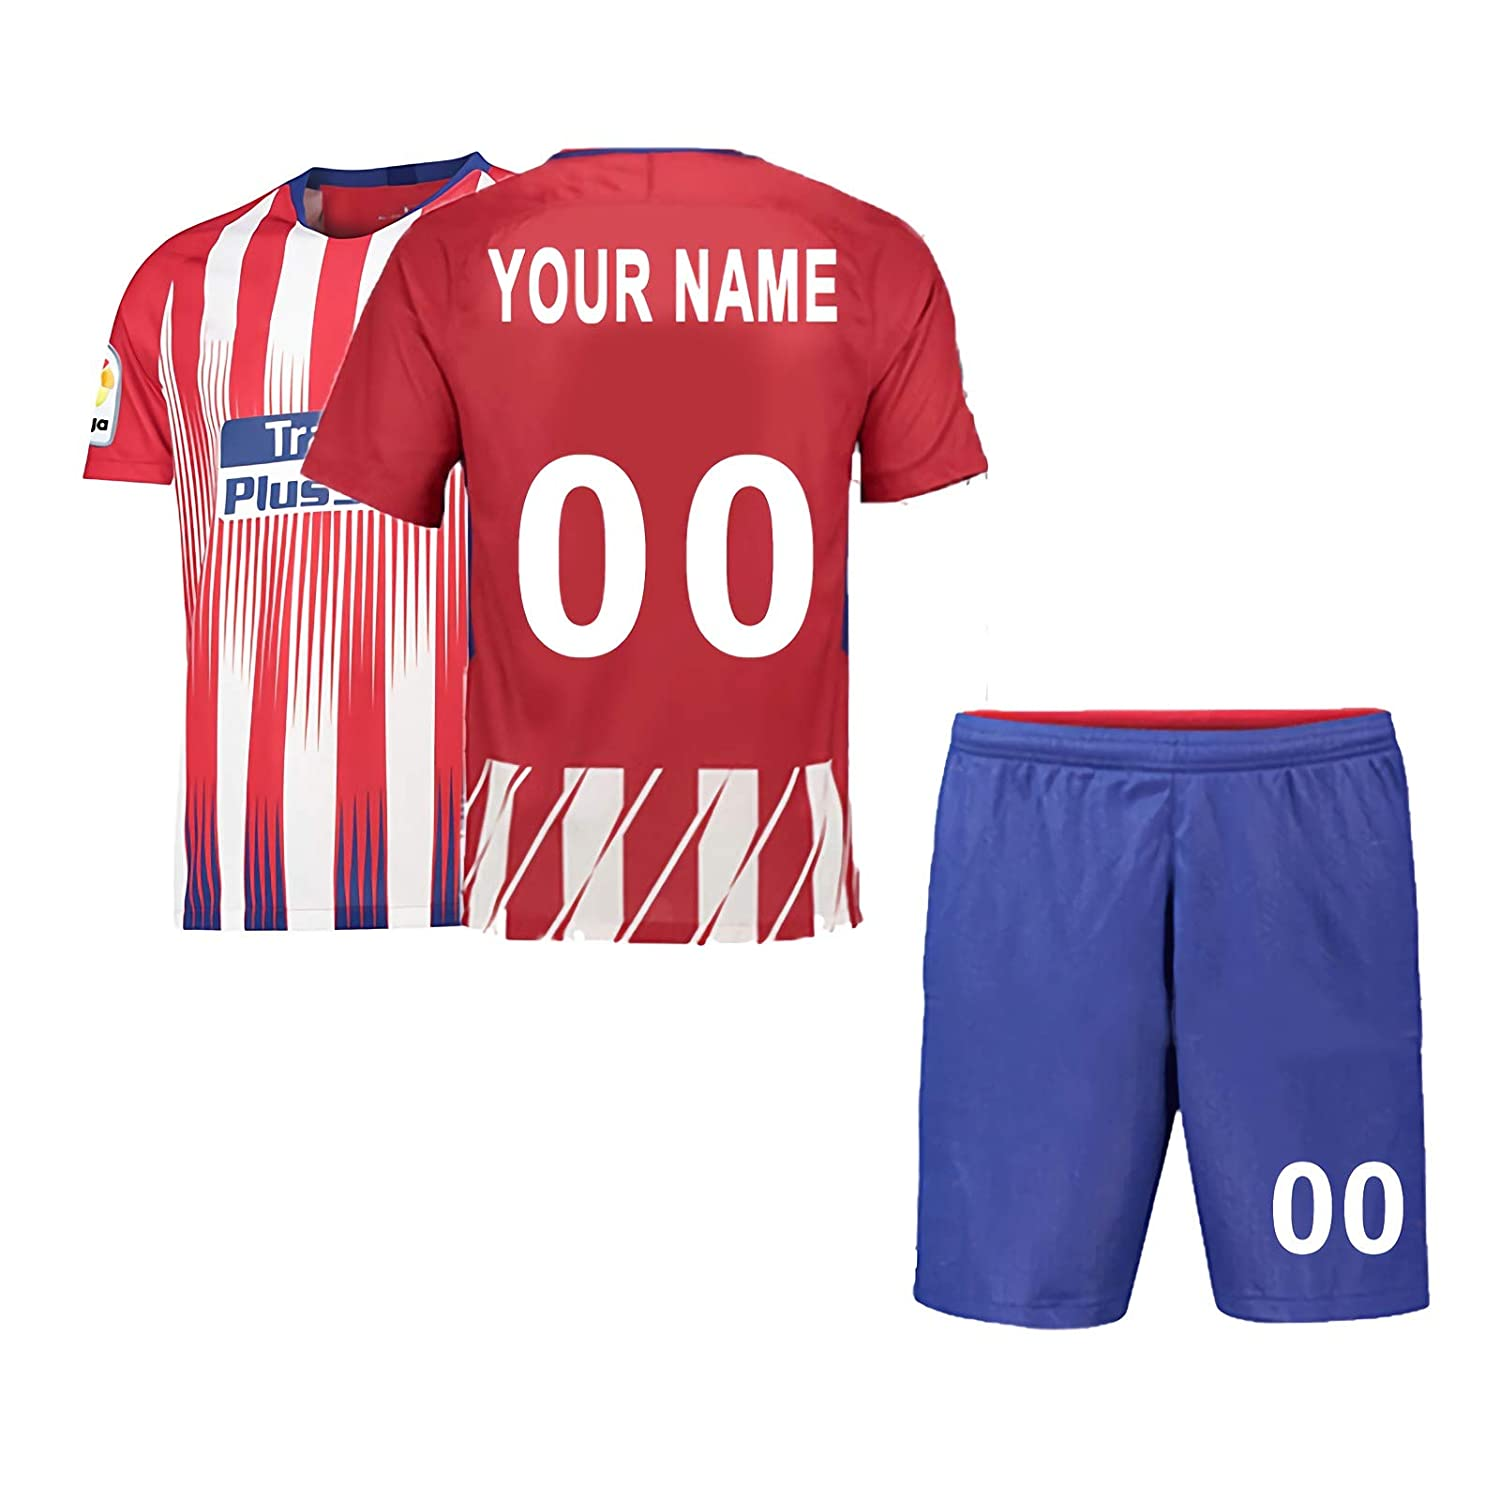 Personalised Football Jersey /& Shorts 2018-2019 New Season,Club Team Multiple Clubs Any Name and Number Customized Football Jersey for Kids Men Youth Home and Away